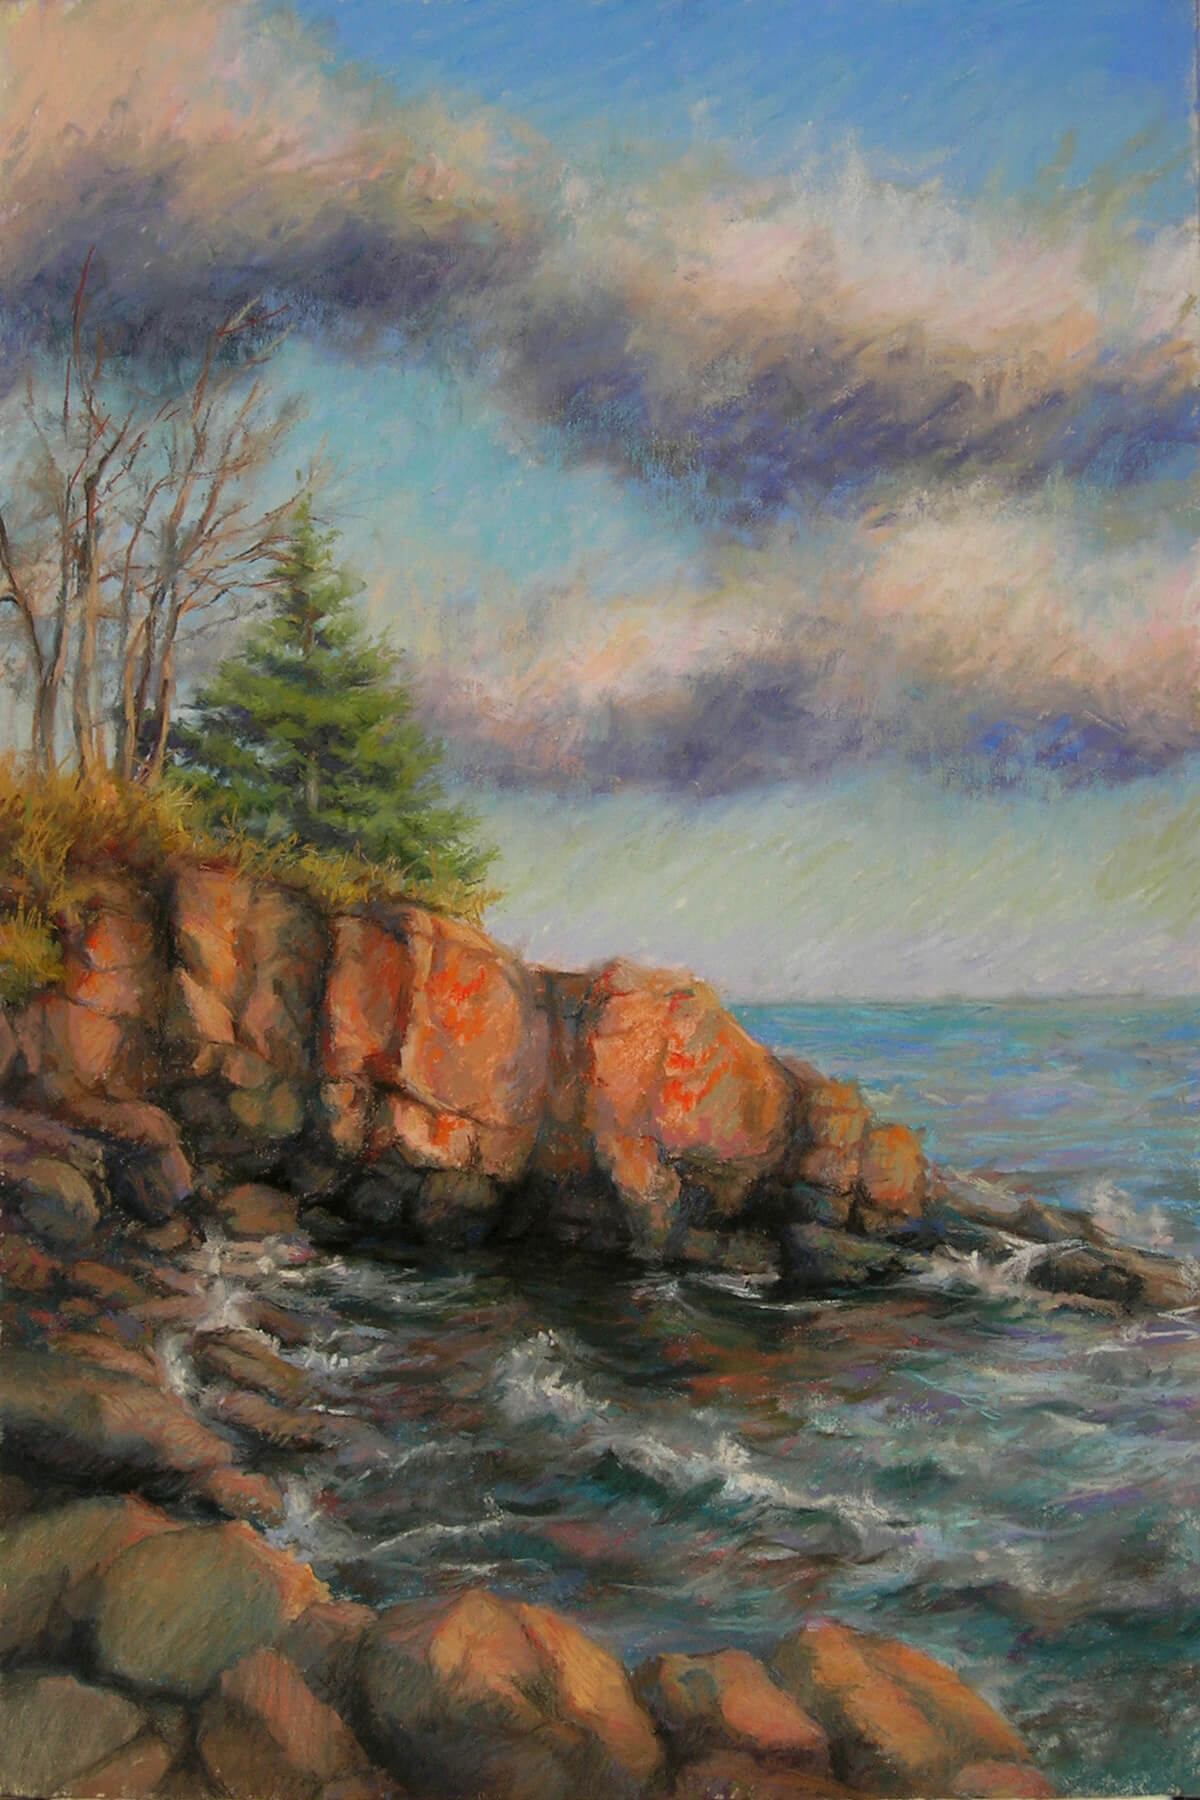 Image of a pastel painting of the rocky shore line of Lake Superior